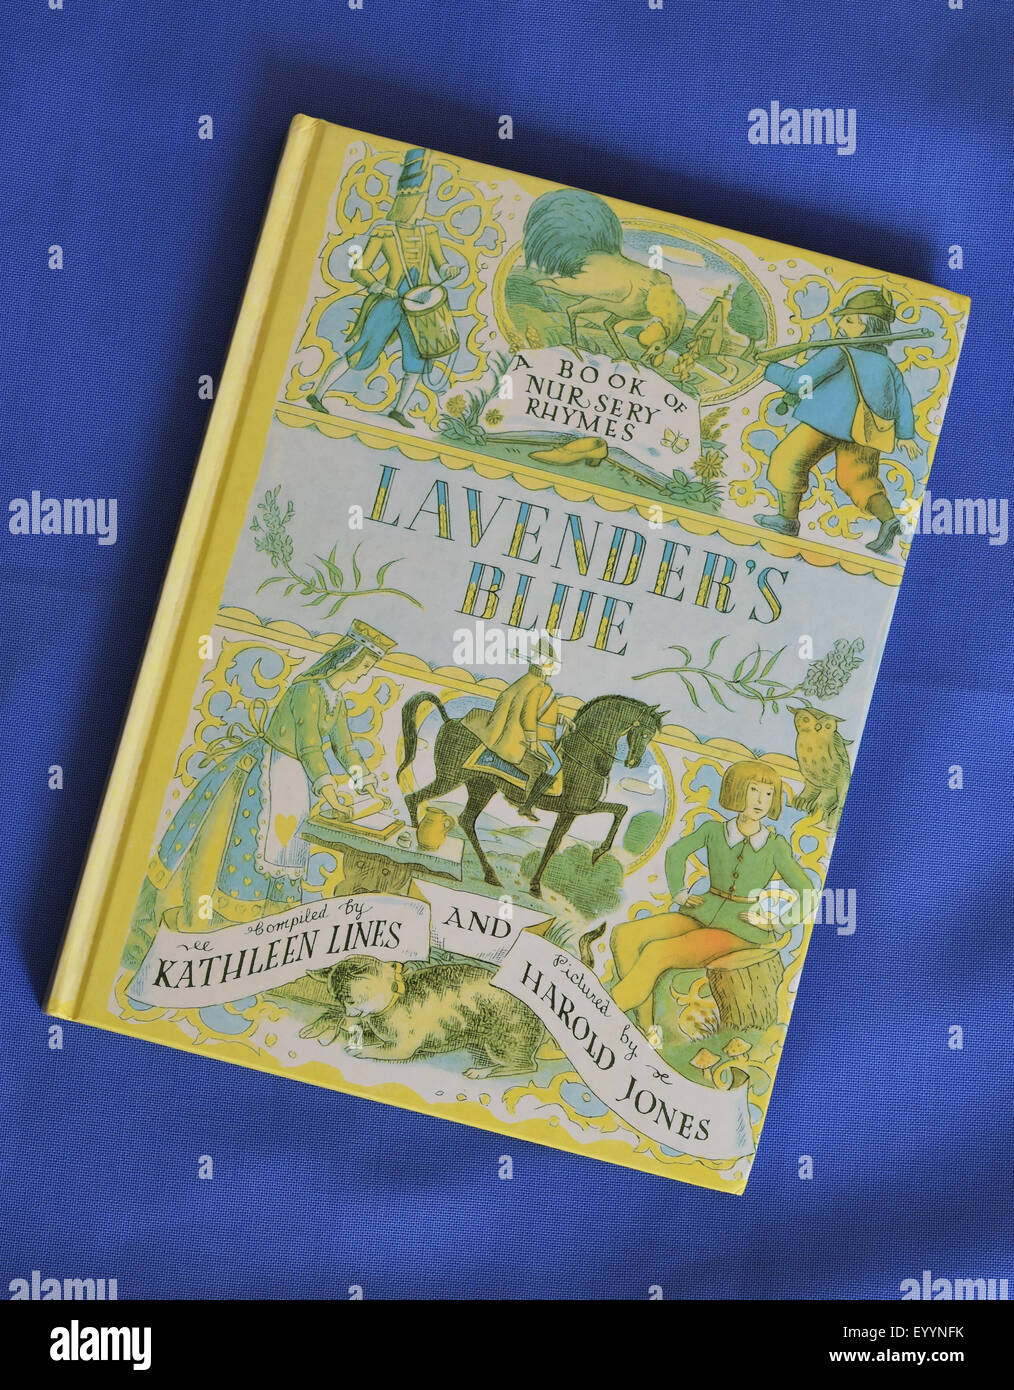 Lavender's Blue - A Book of Nursery Rhymes -  compiled by Kathleen Lines and pictured by Harold Jones. Published - Stock Image